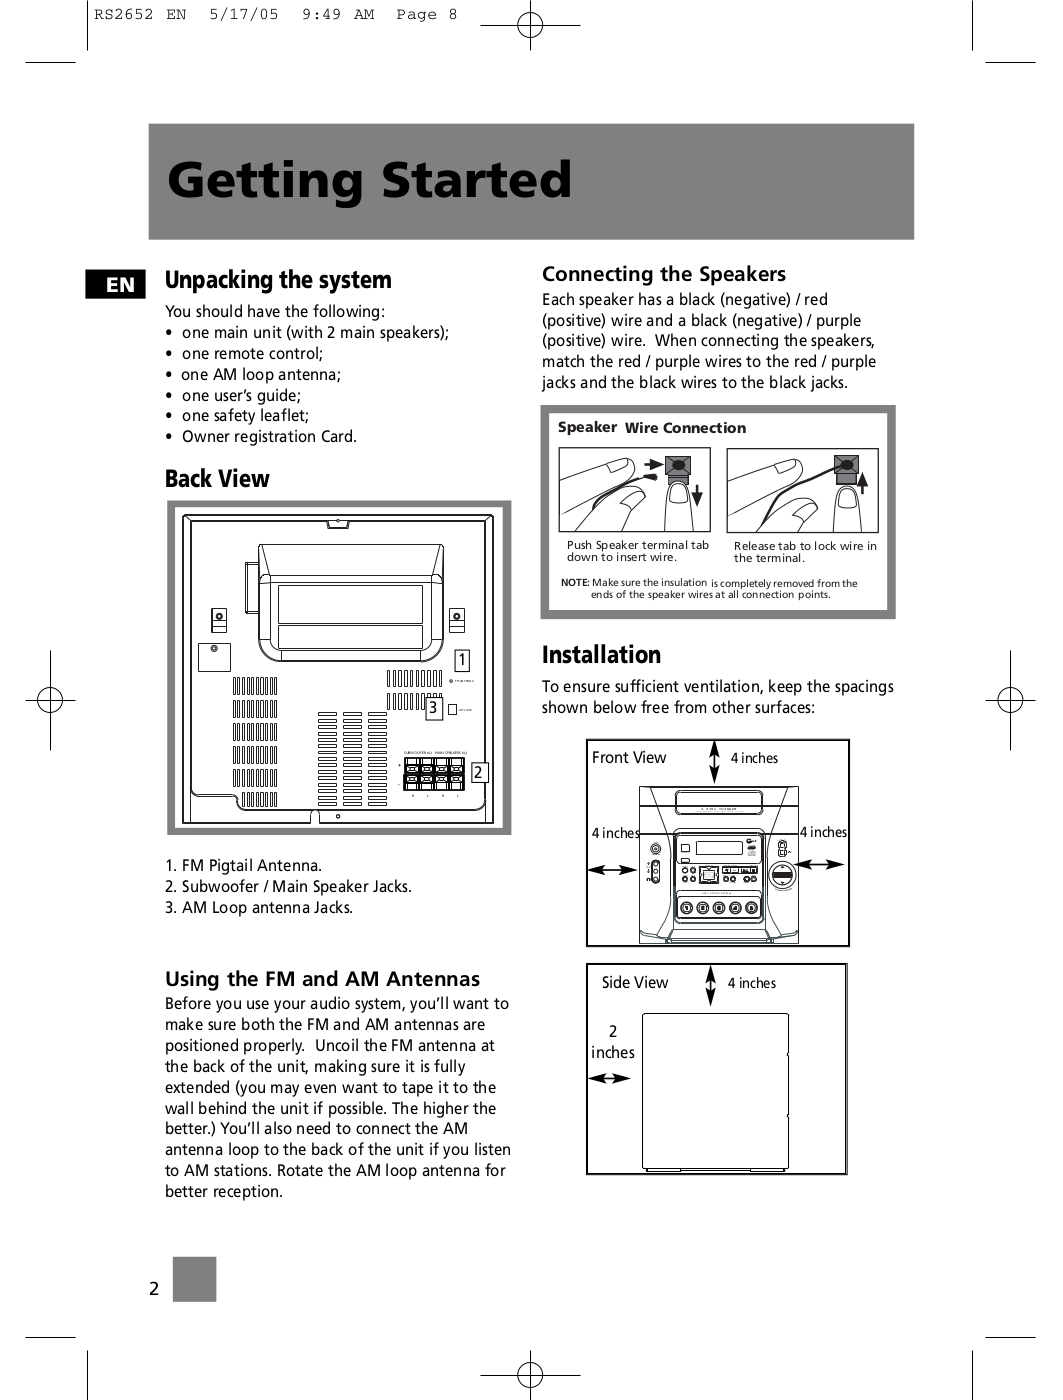 pdf manual for rca other rs2652 stereo systems rh umlib com RCA Home Theater Owners Manual RCA Alarm Clock Radio Manuals